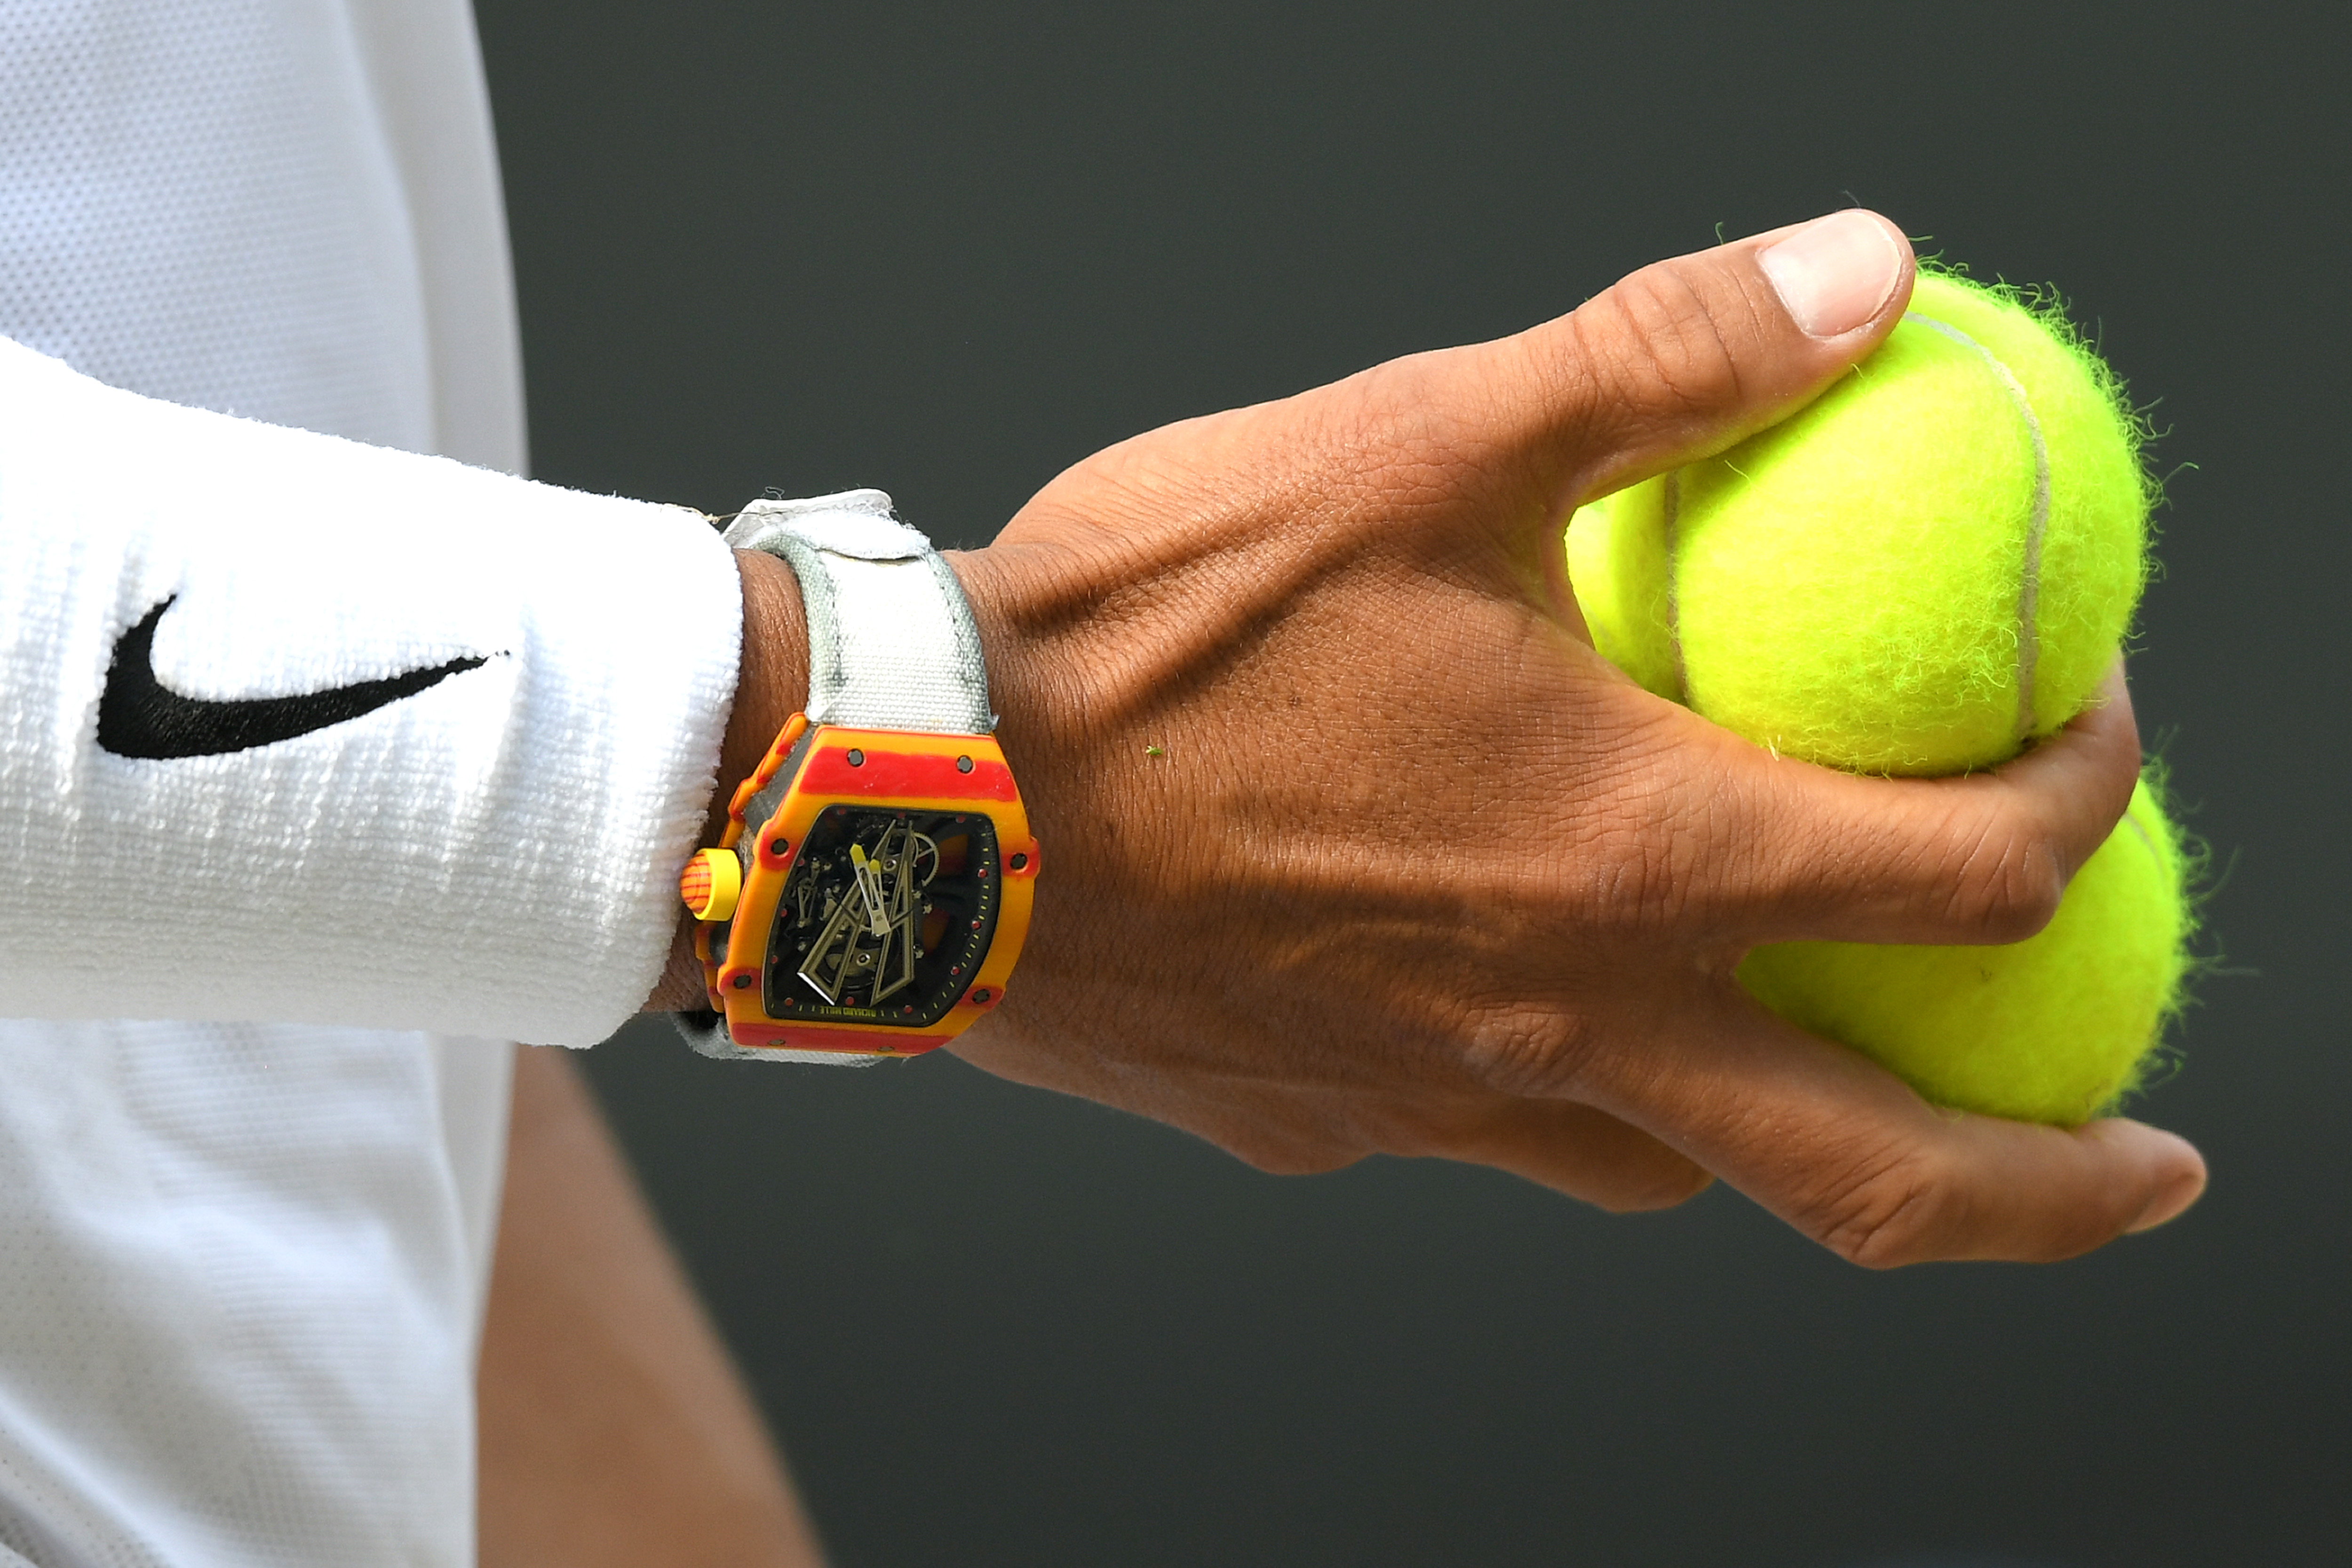 What Makes a Great Sports Watch?